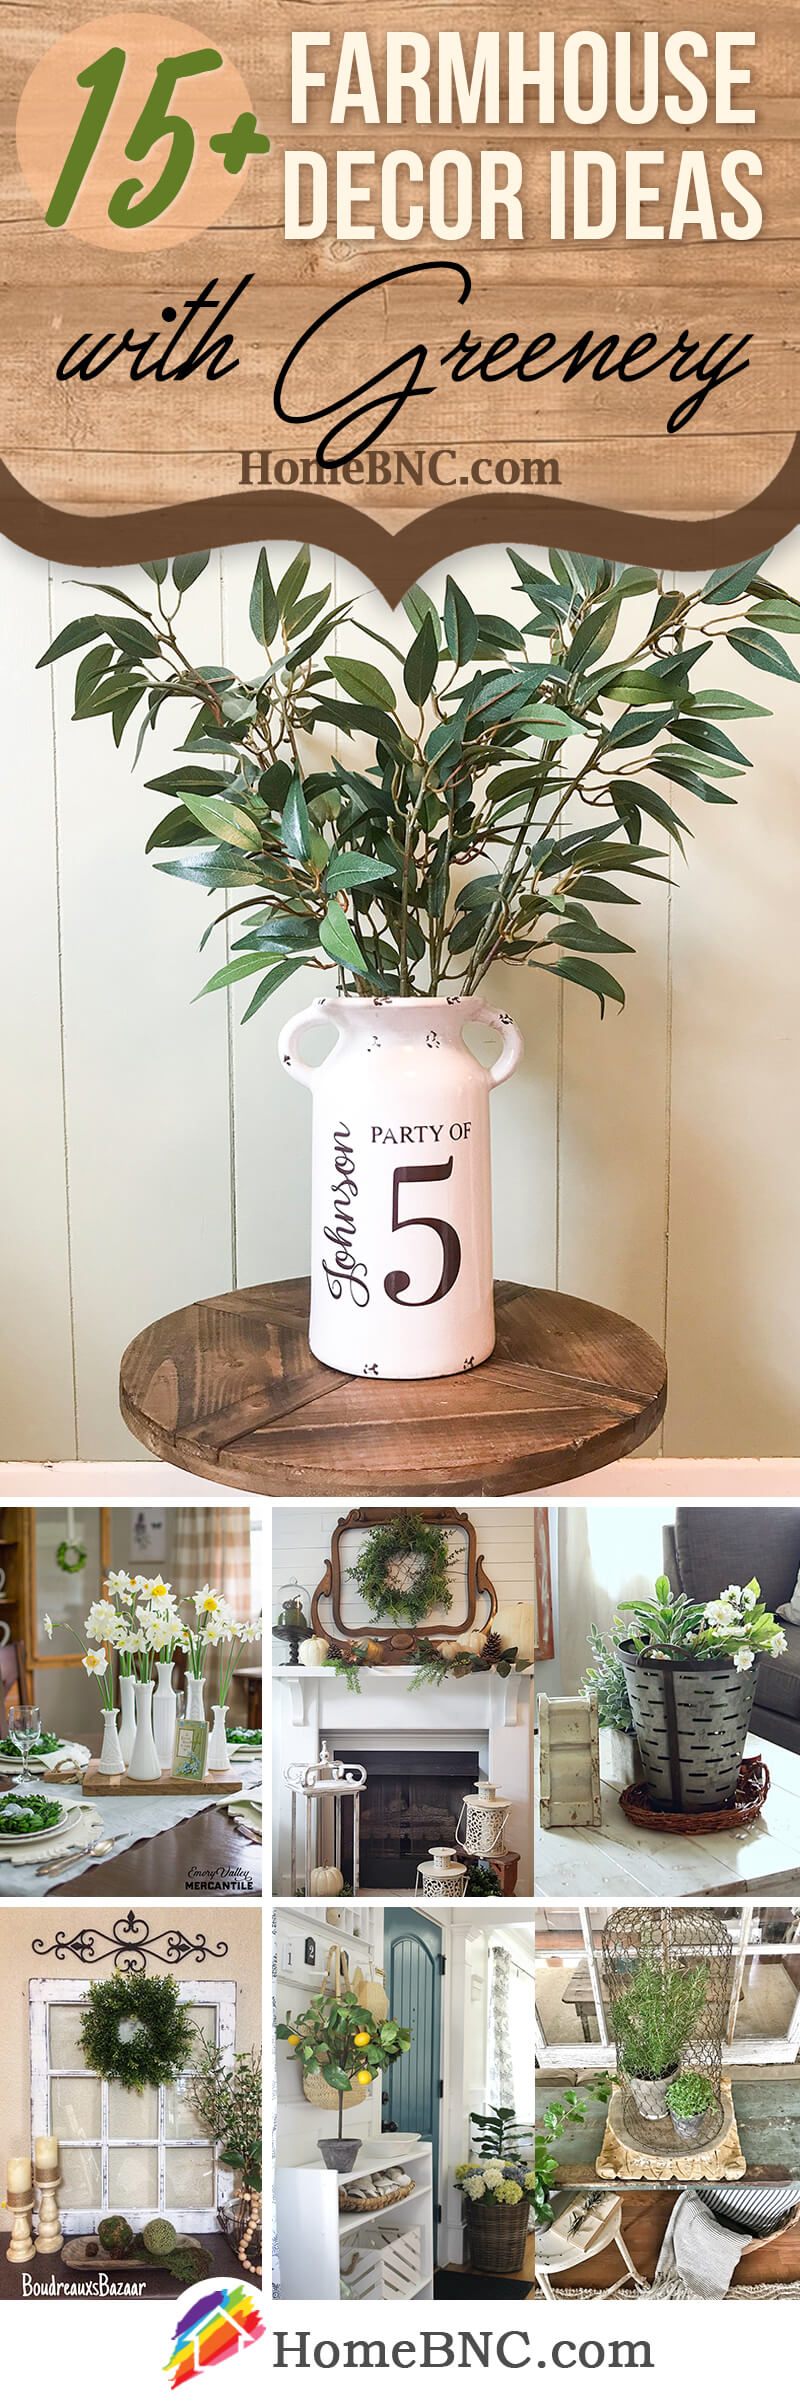 Farmhouse Decor with Greenery